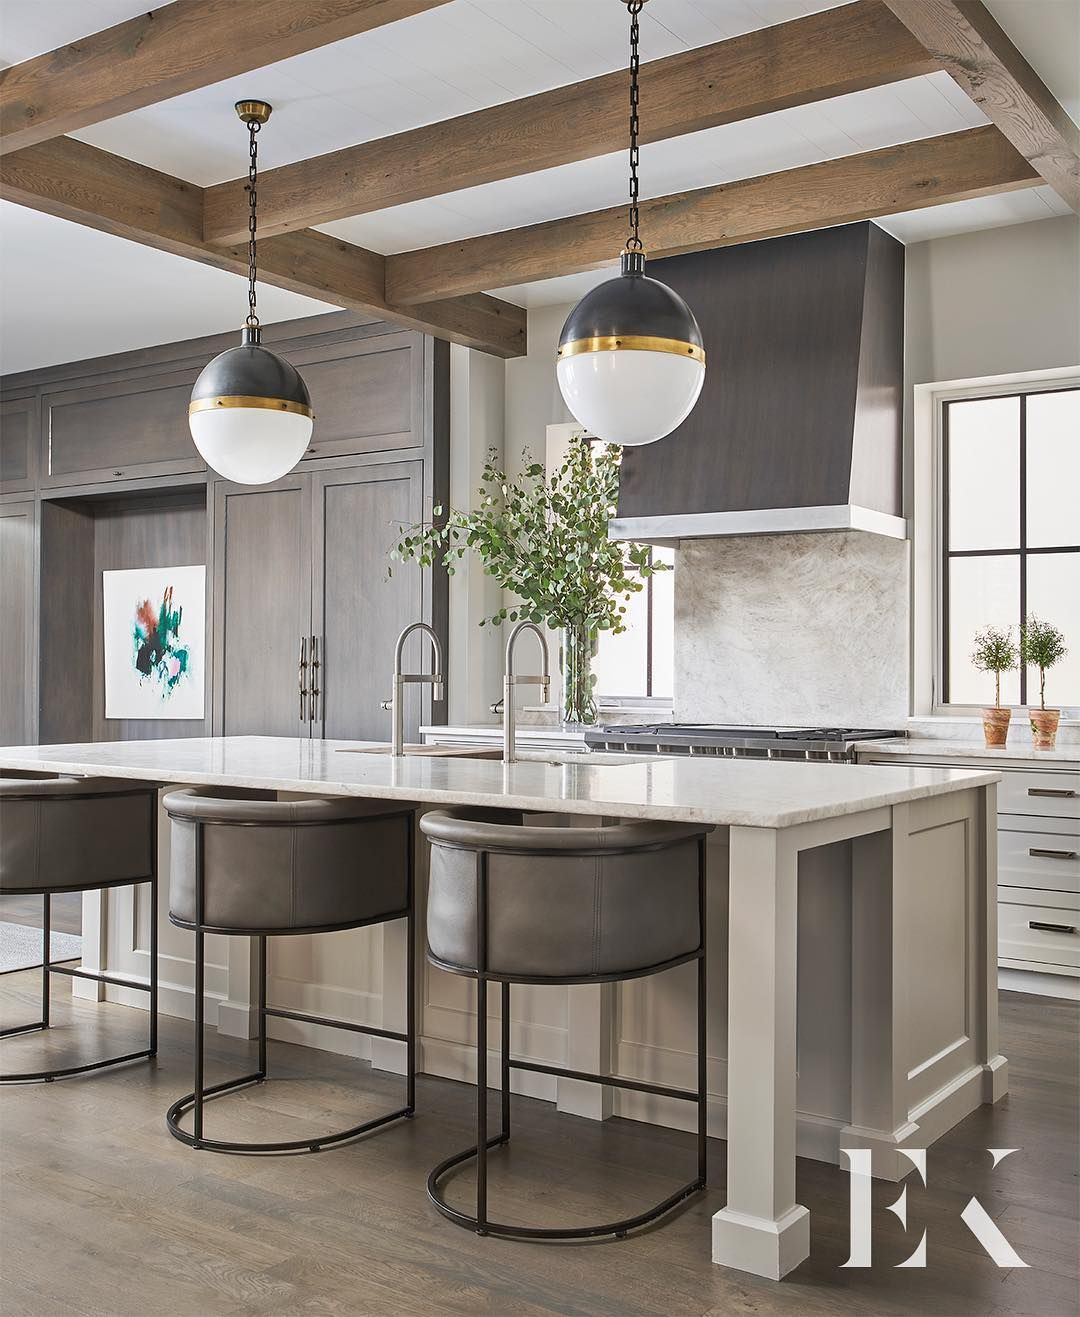 Industrial Meets Rustic In This Kitchen: Rustic Meets Modern Kitchen - Cool, Grey Tones